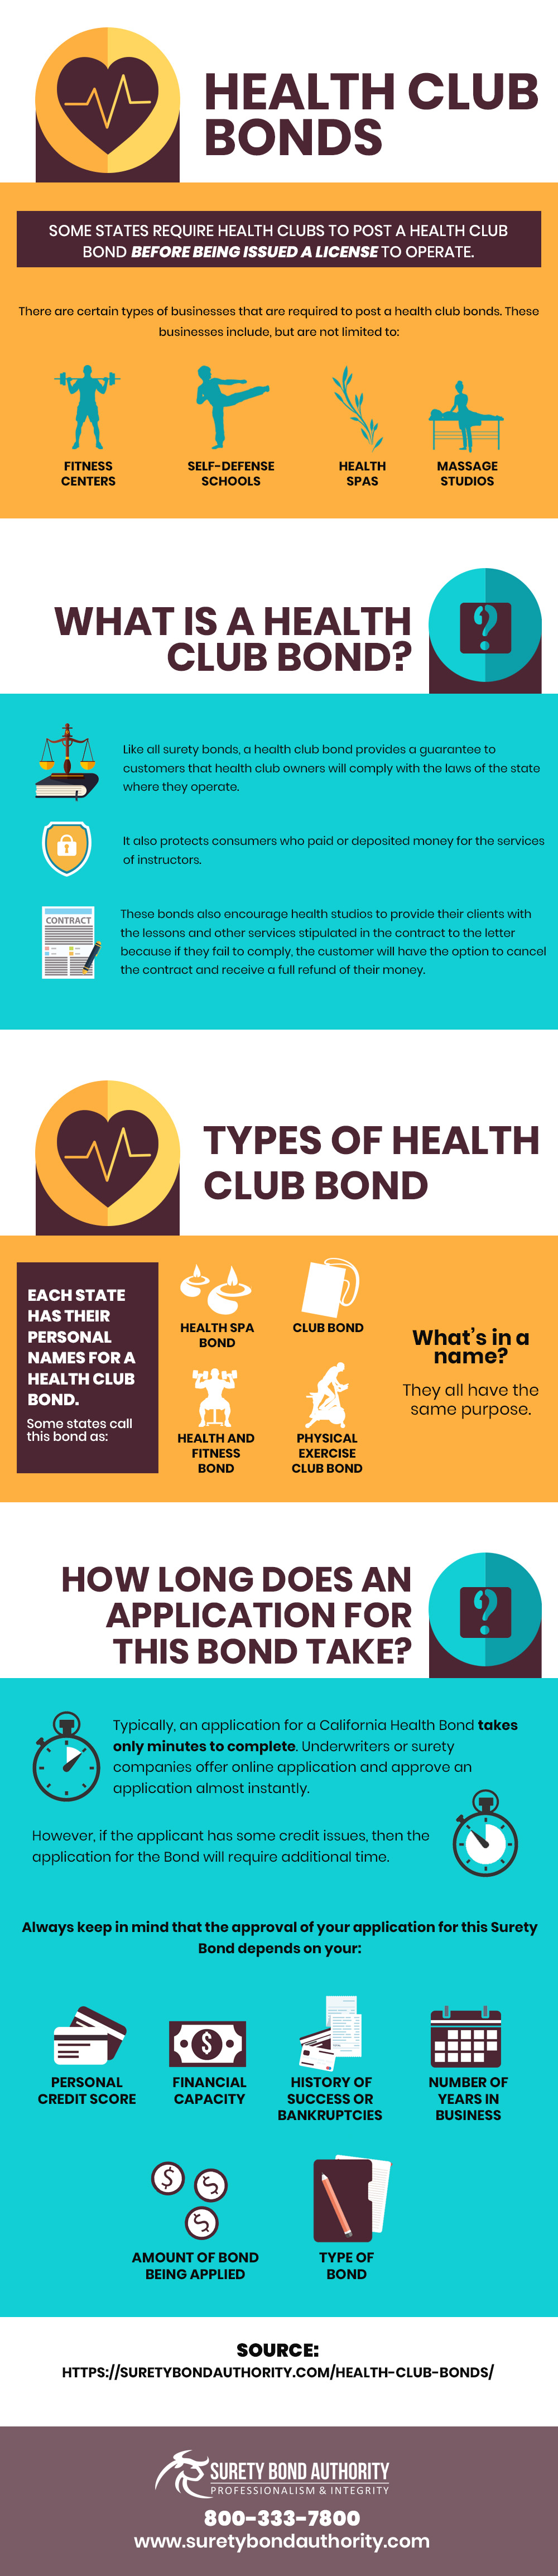 Health Club Bond Infographic